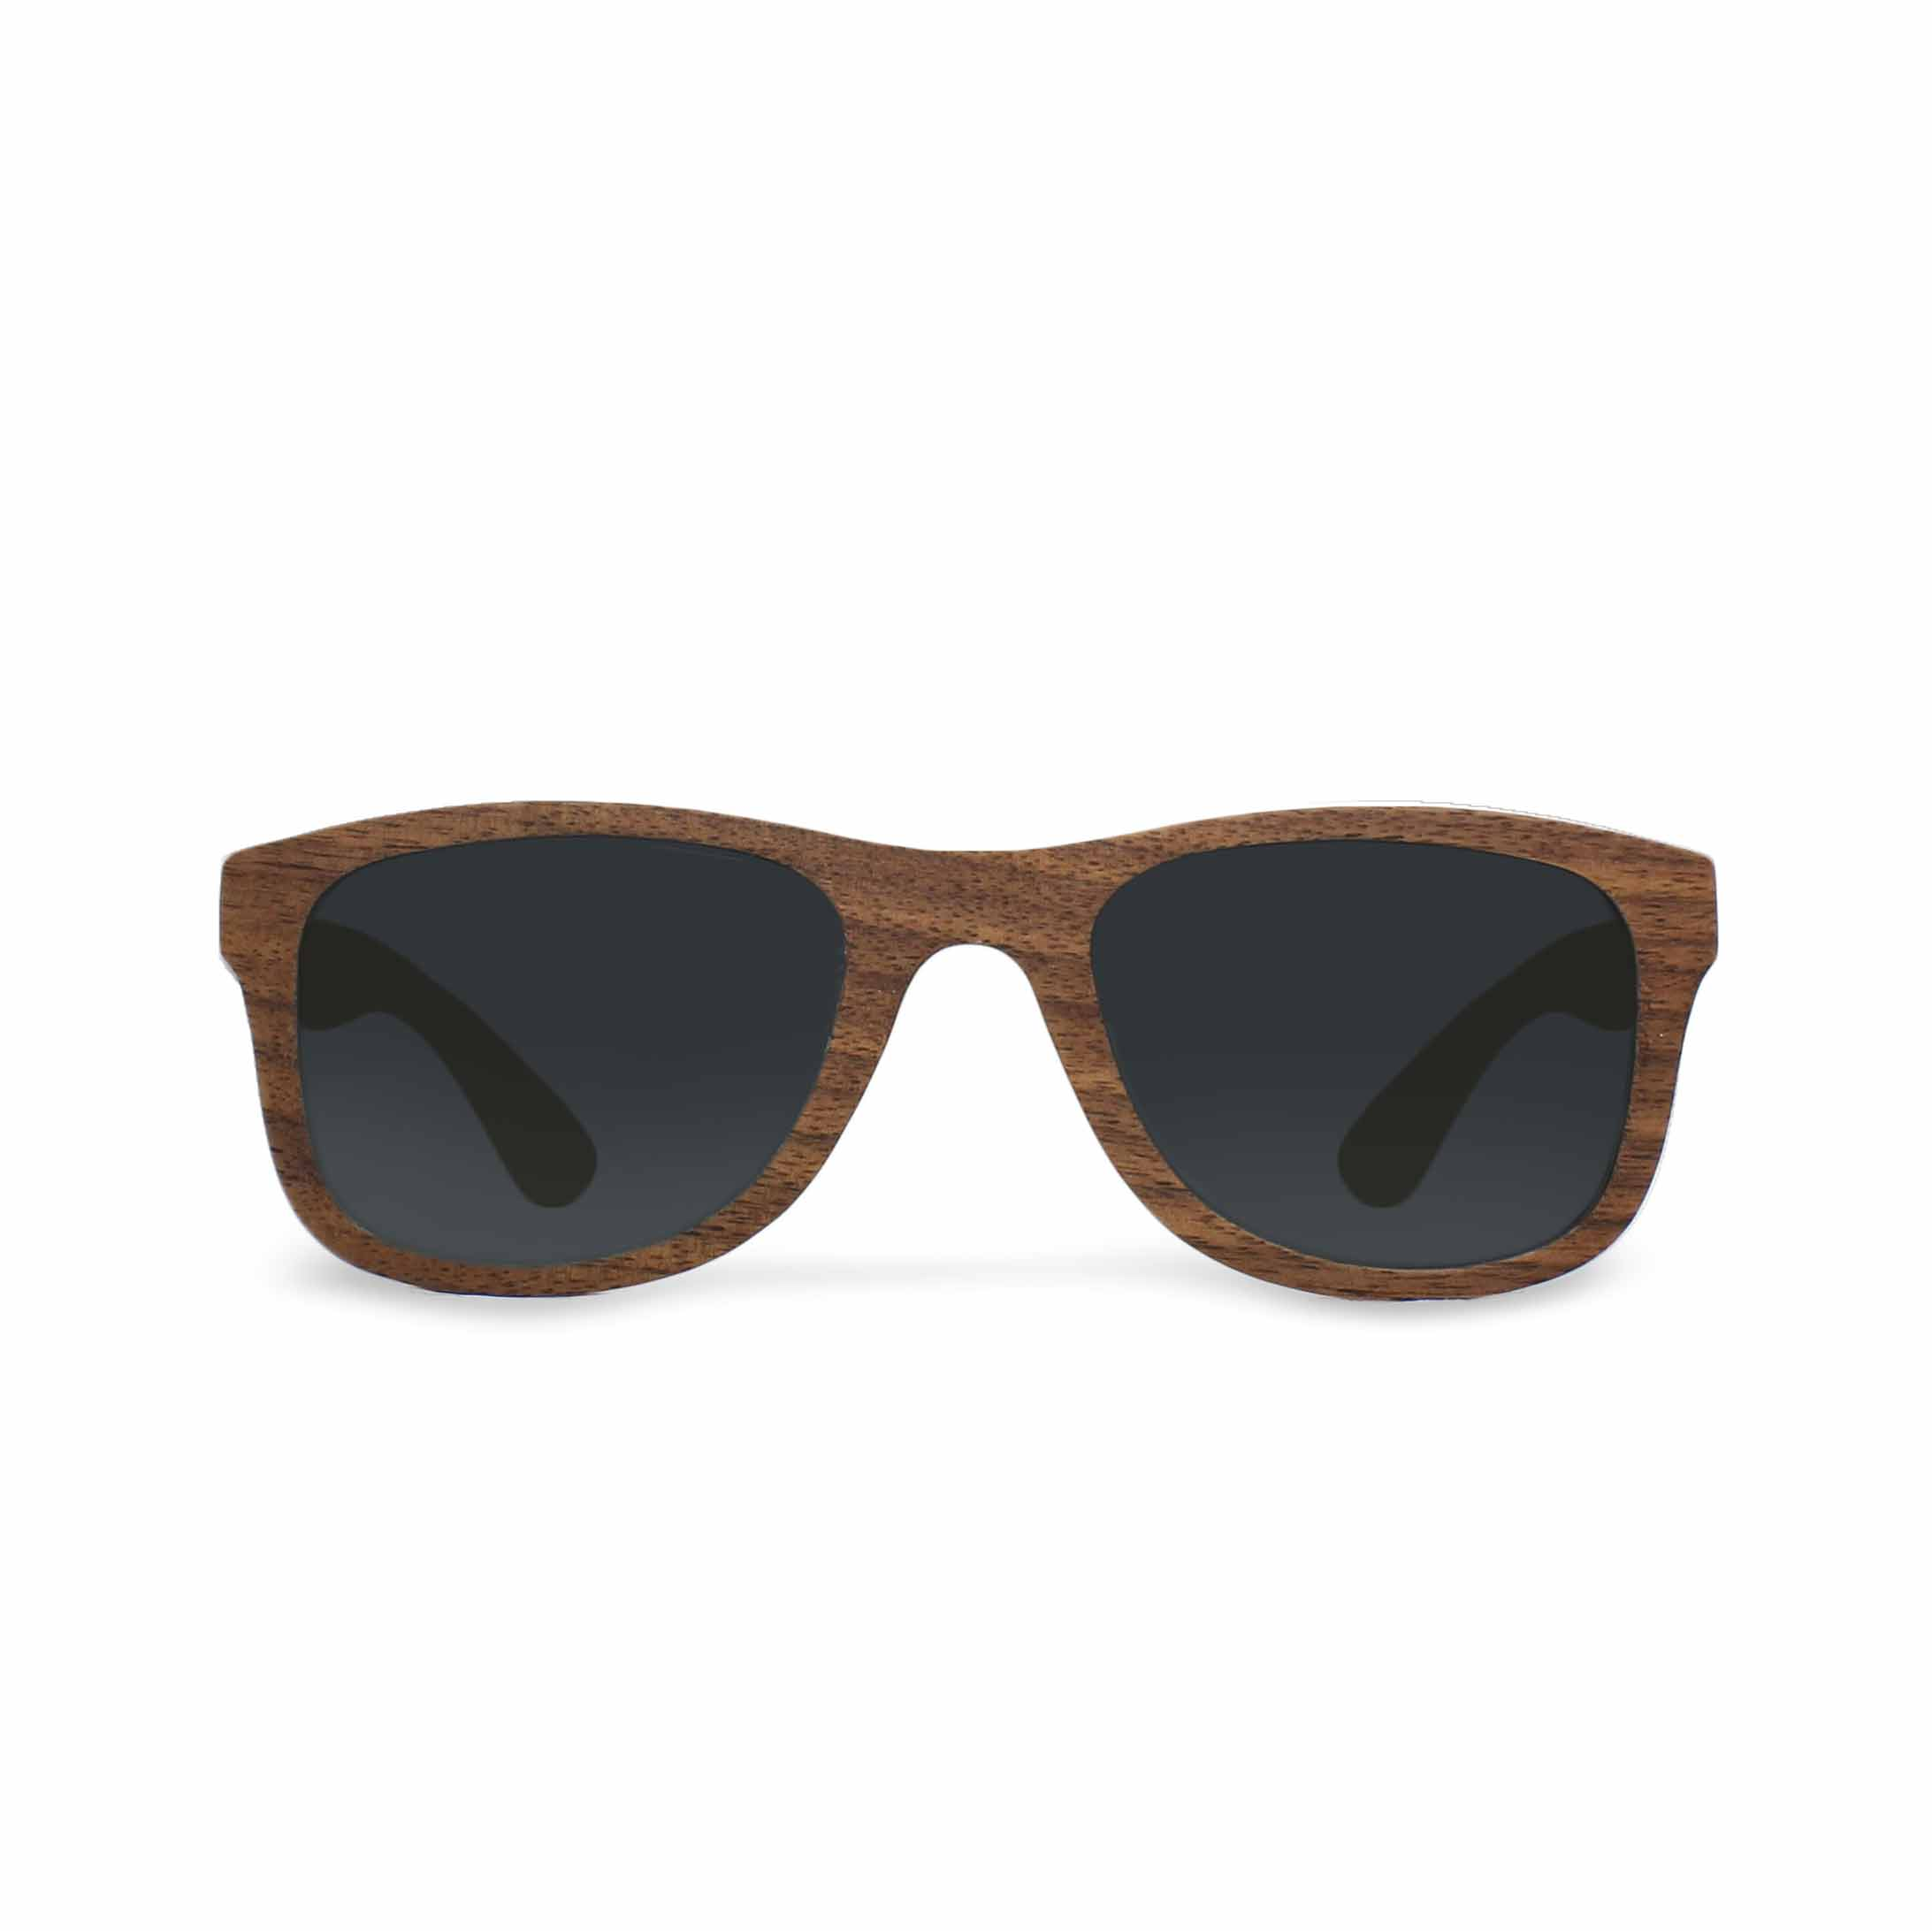 Lunettes de soleil WAYFARER Balano by Time for Wood